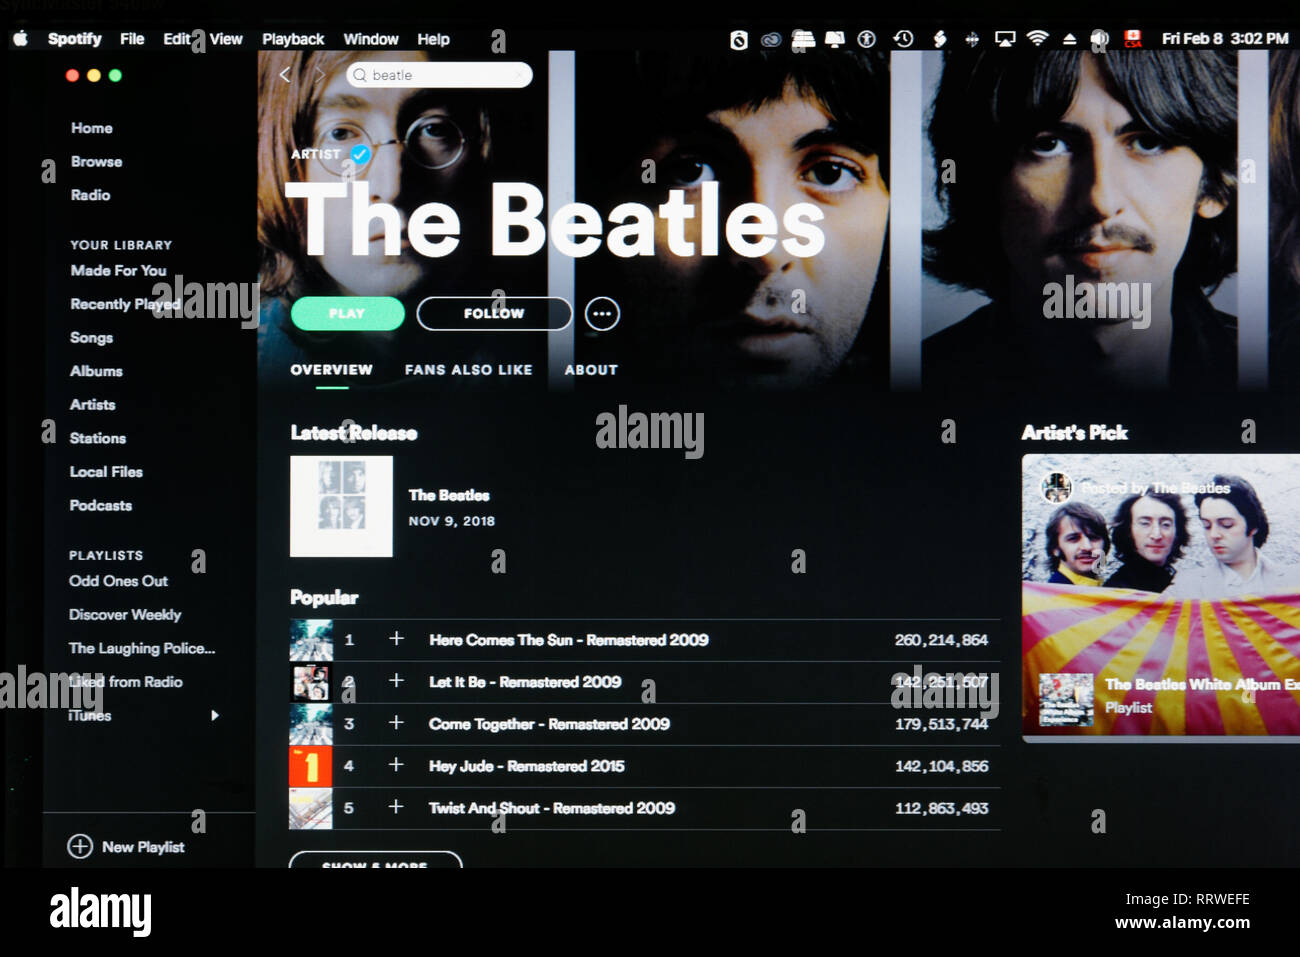 The Beatles Spotify home page - Stock Image